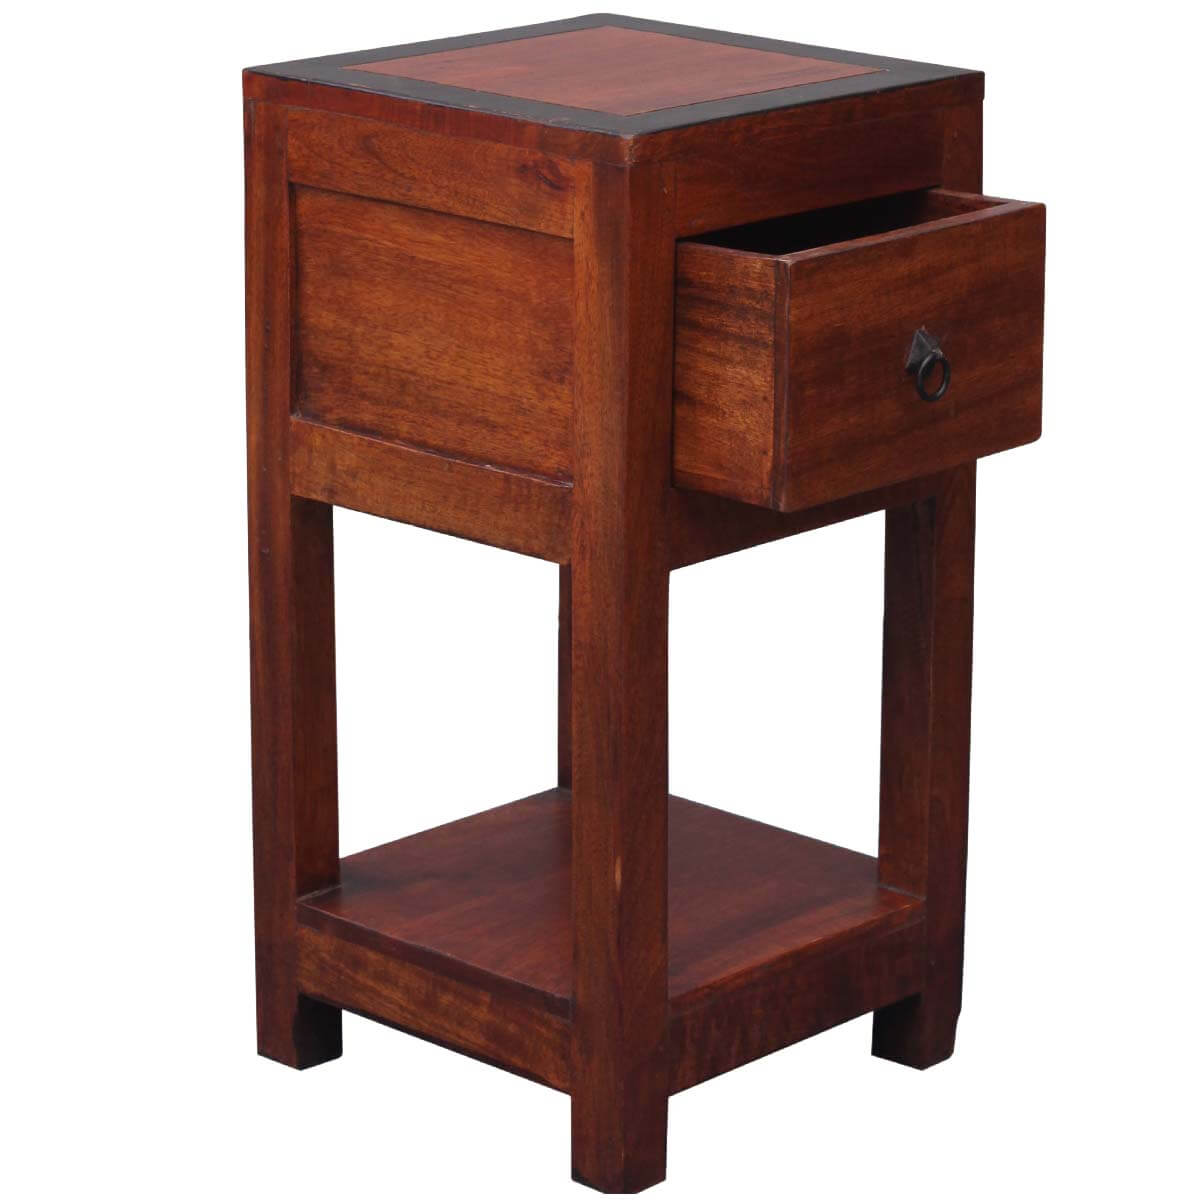 Square 2 tier solid wood nightstand end table w drawer for Wood nightstand with drawers